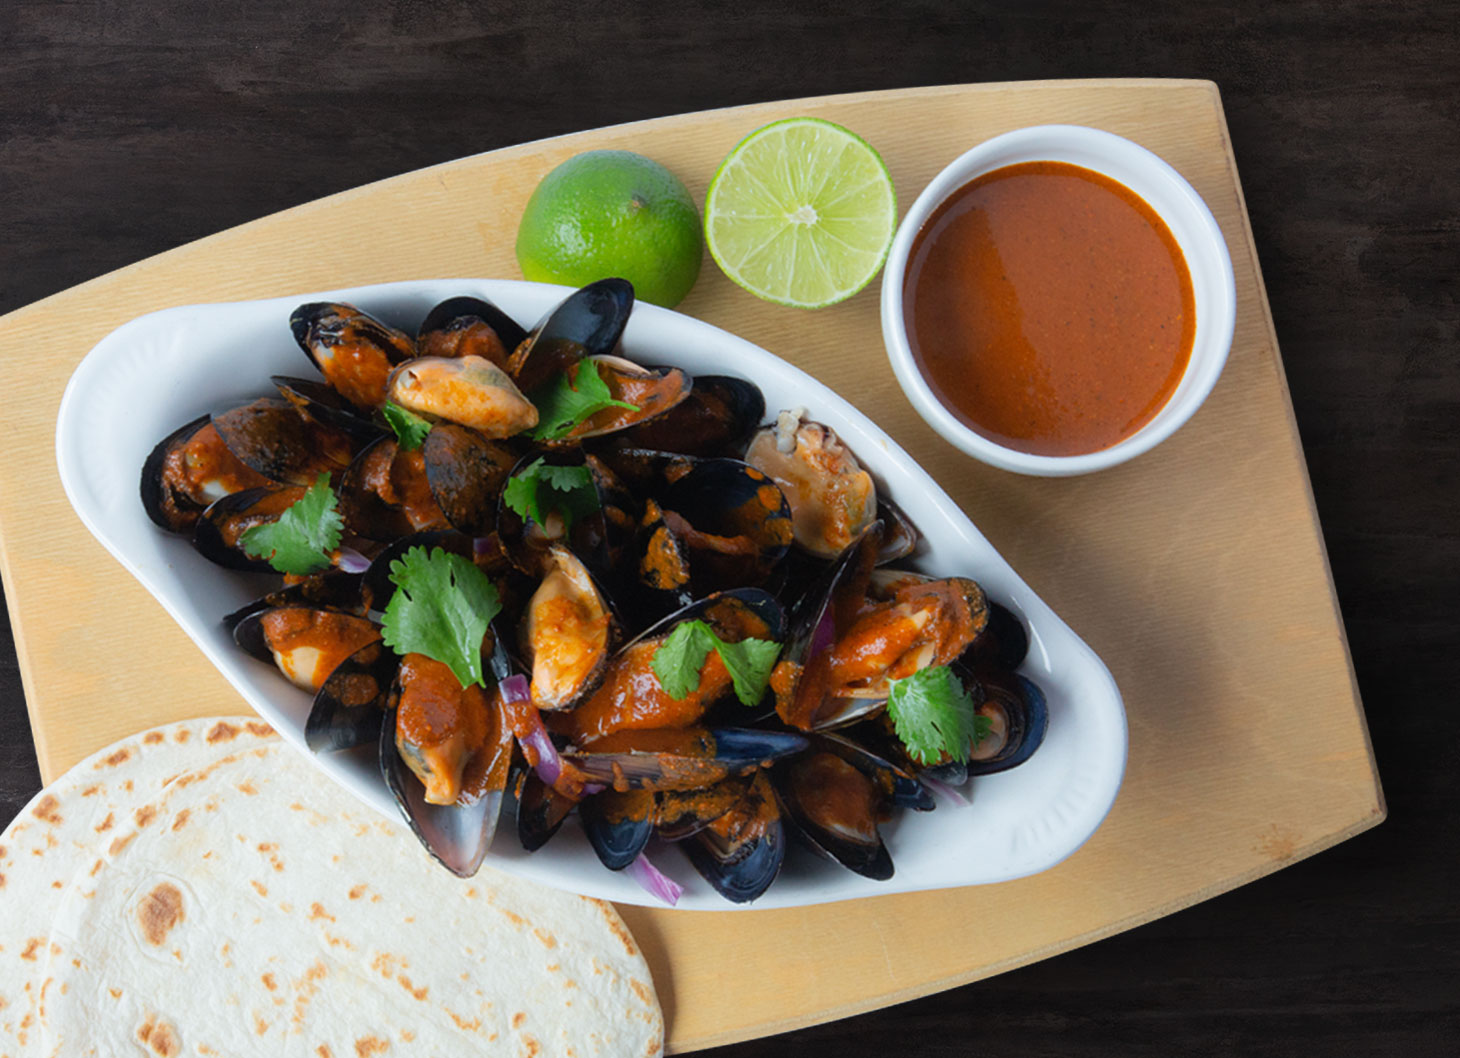 h806-mussels-with-oaxacan-mole-amarillo.jpg